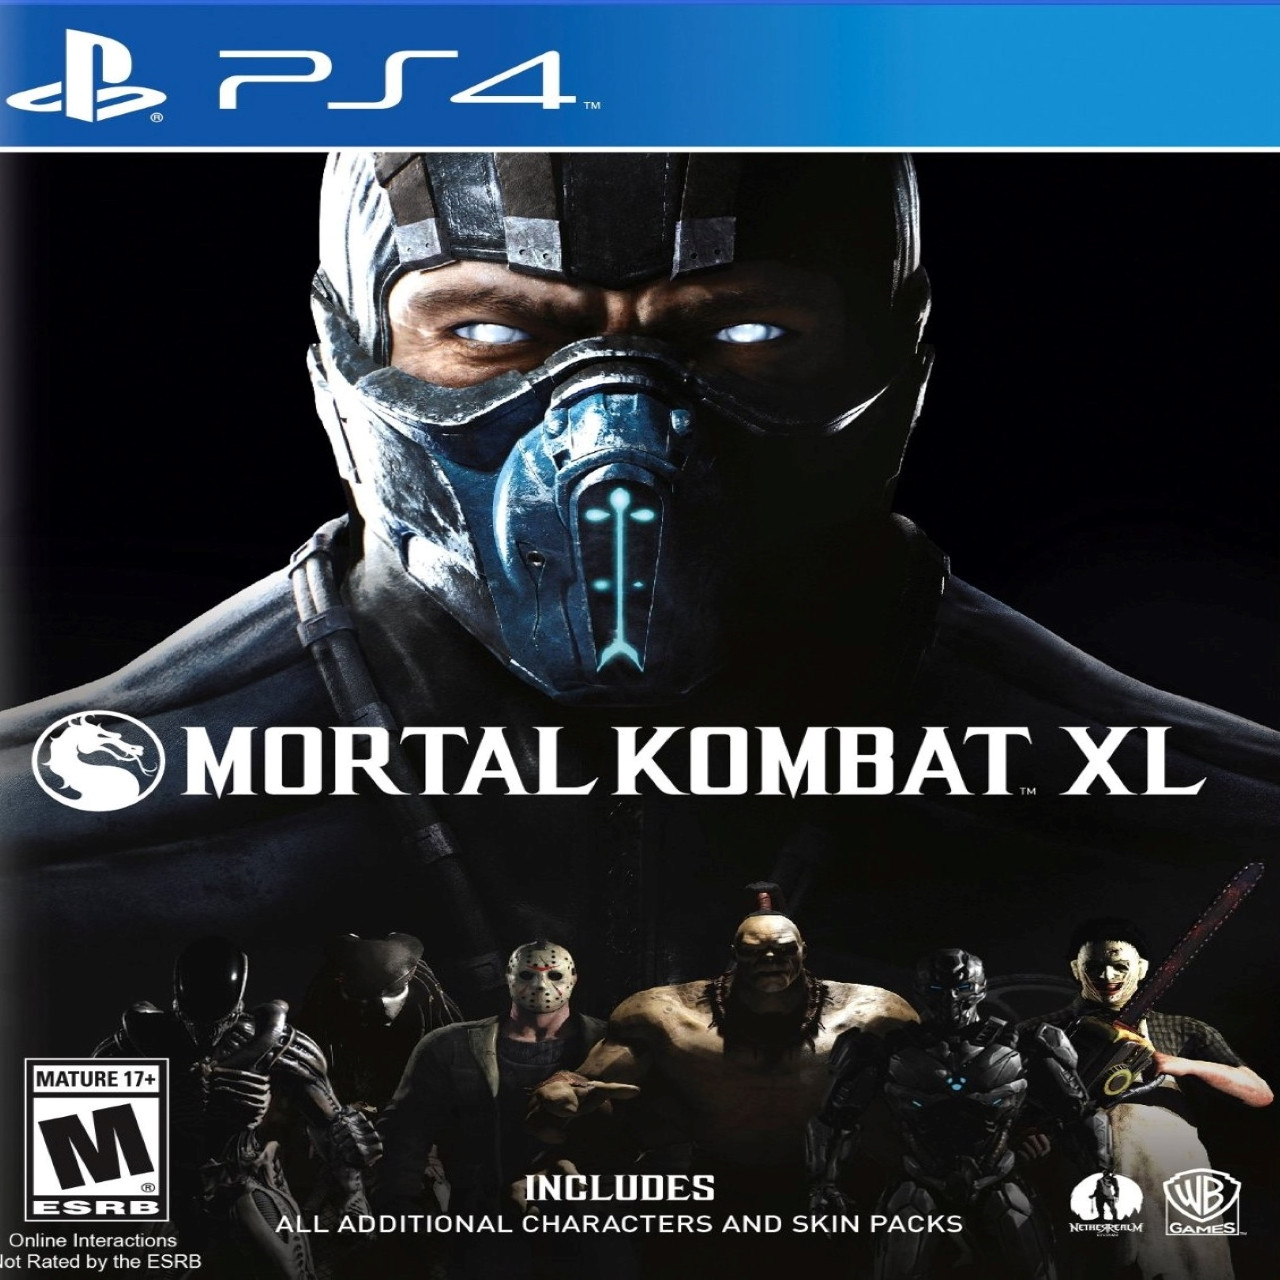 Mortal Kombat XL SUB PS4